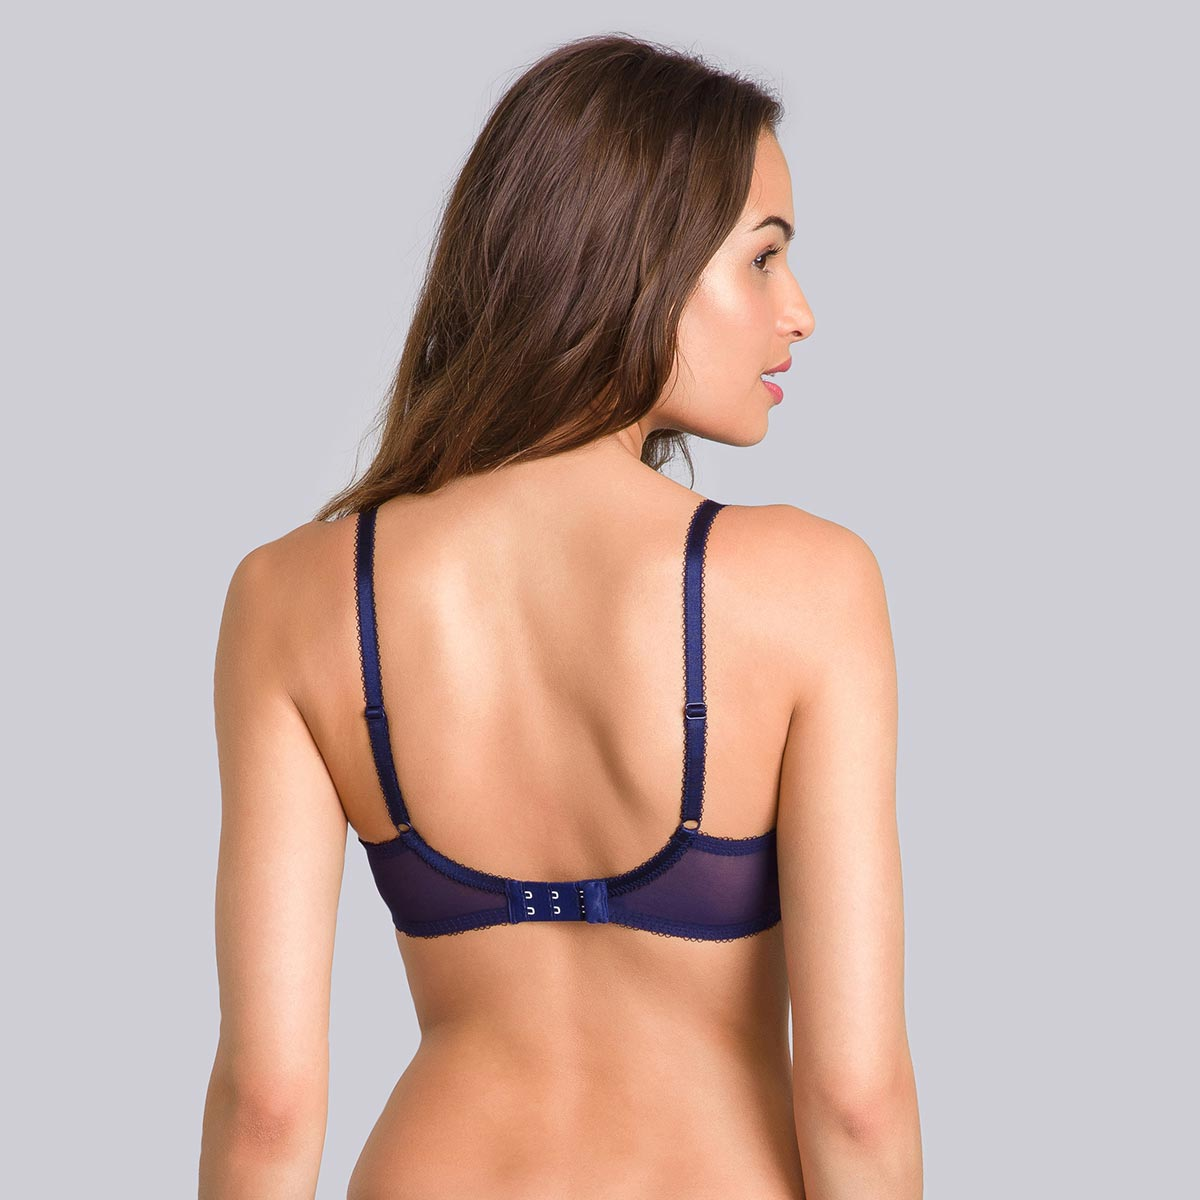 Blue balconette bra with green print - Daily Elegance-PLAYTEX